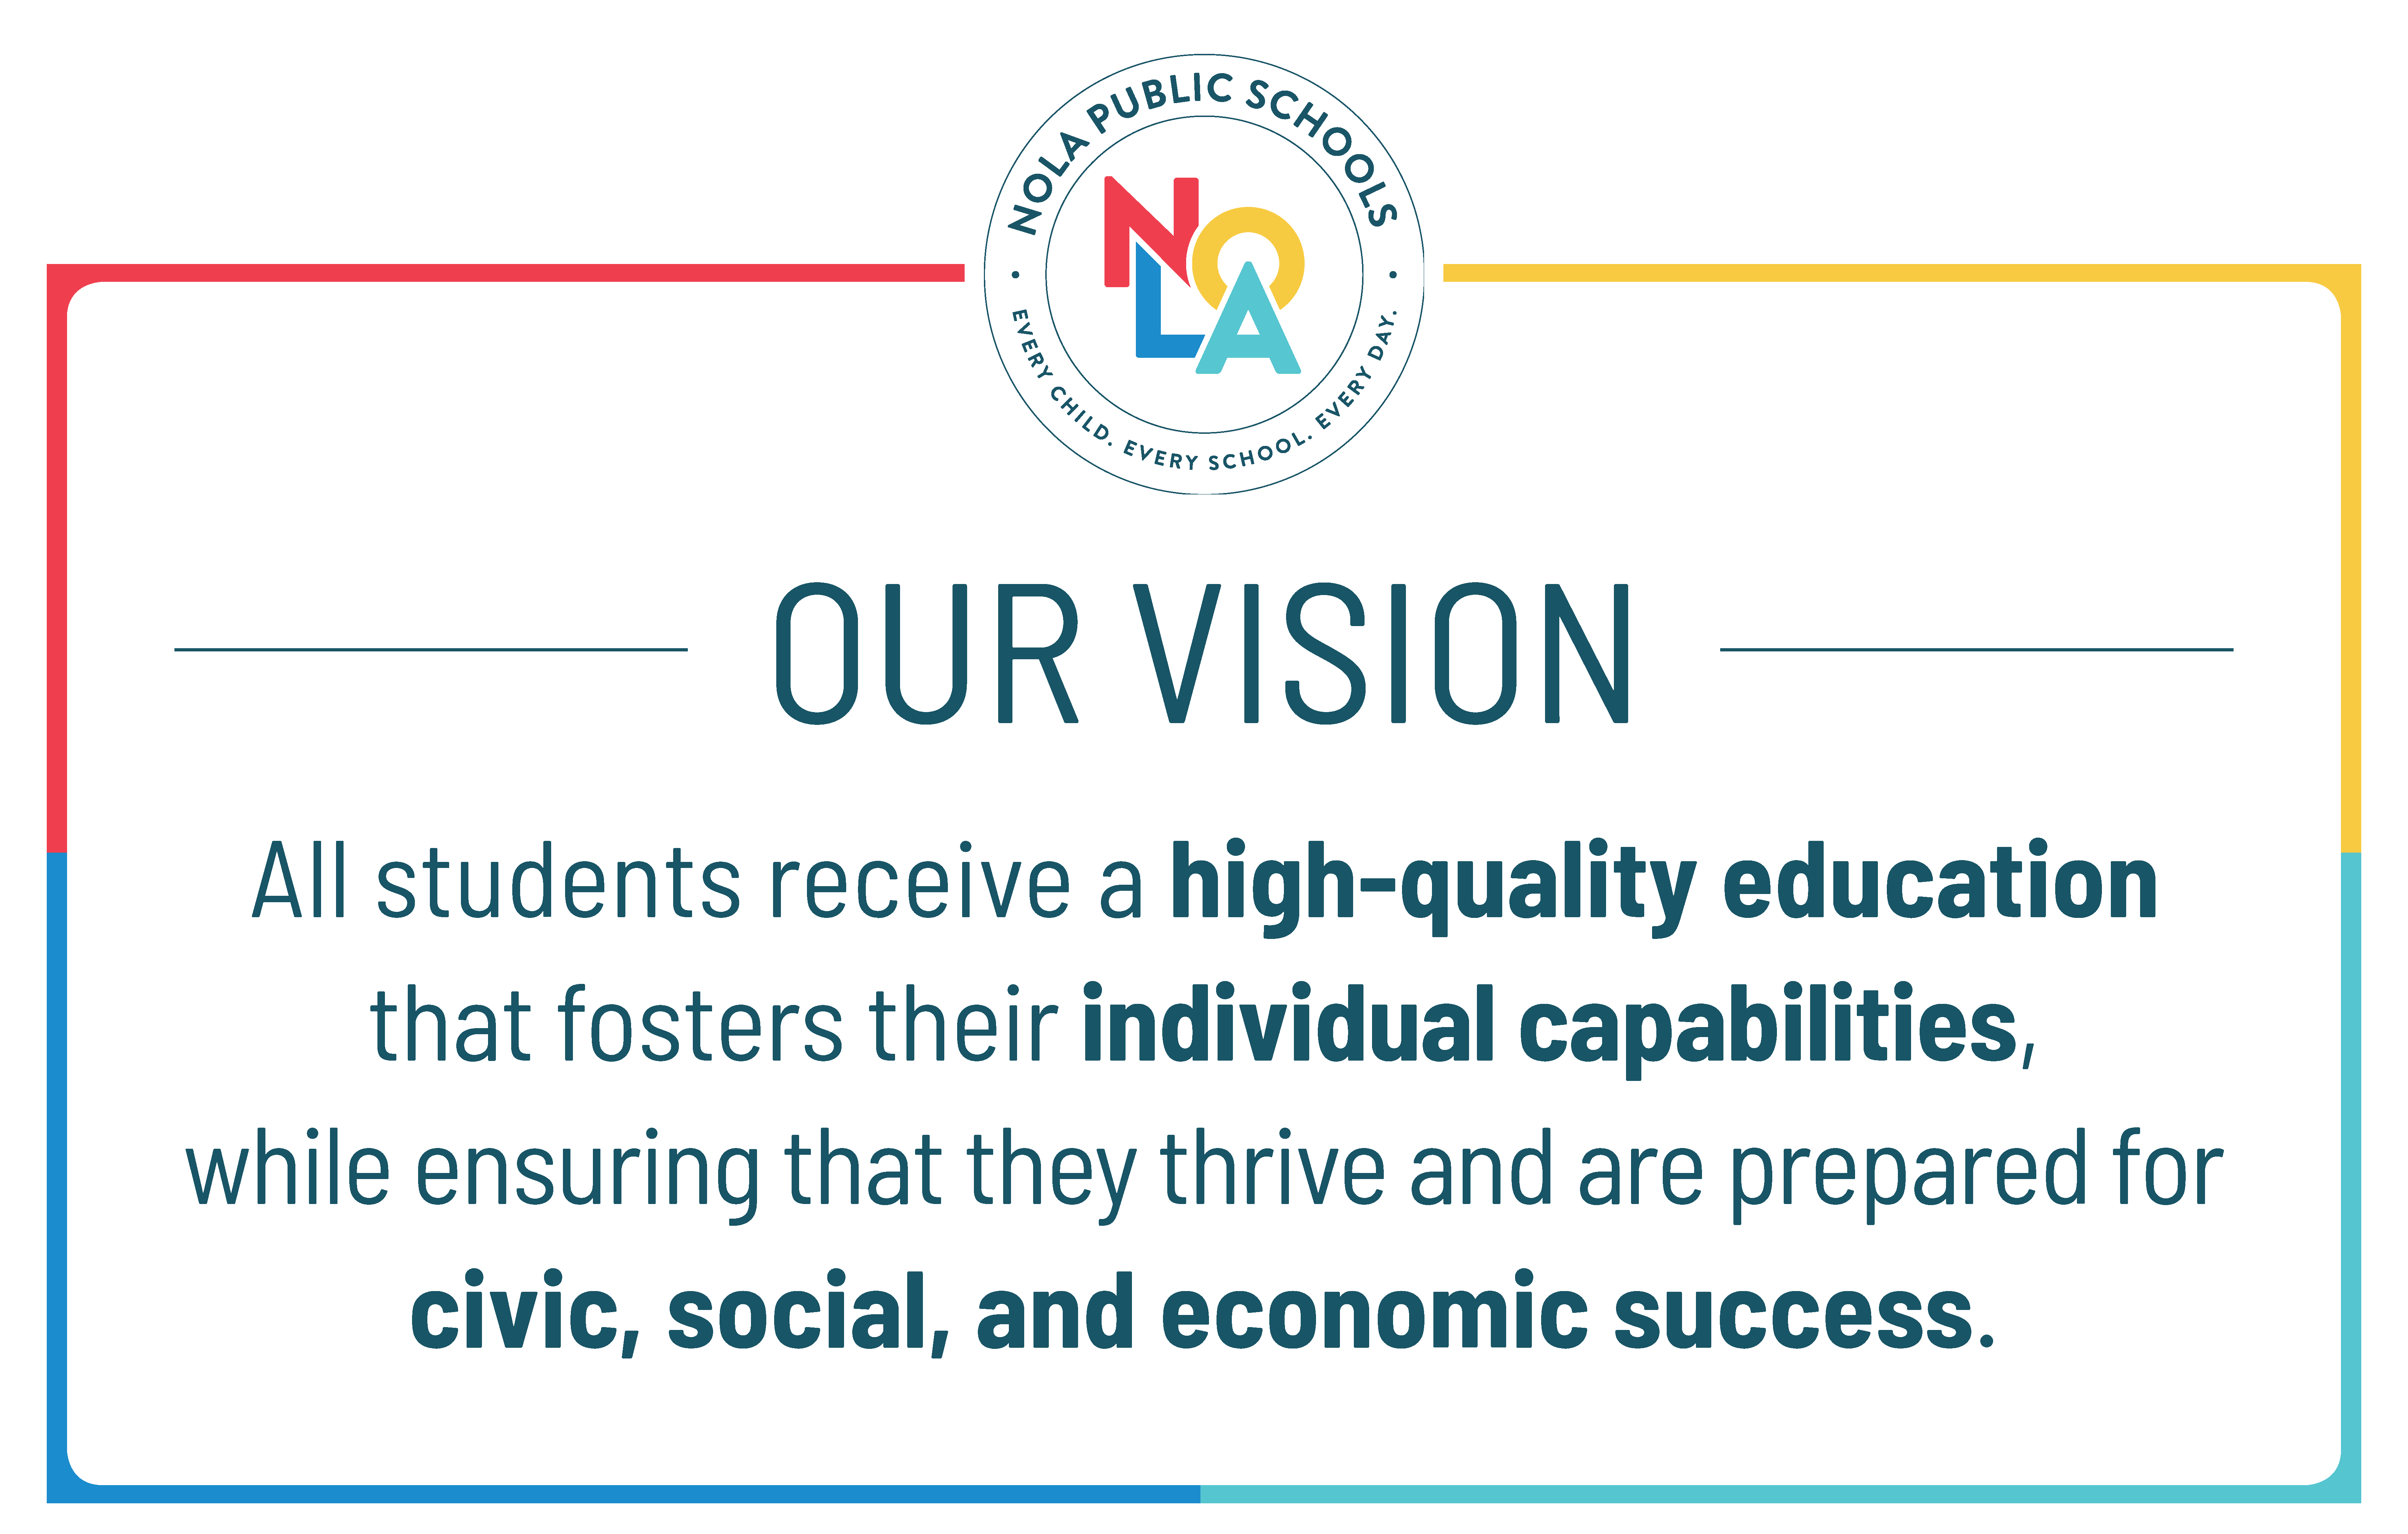 Our Vision: Every student receives a high-quality education that fosters his or her individual capabilities, while ensuring that they thrive and are prepared for civic, social, and economic success.